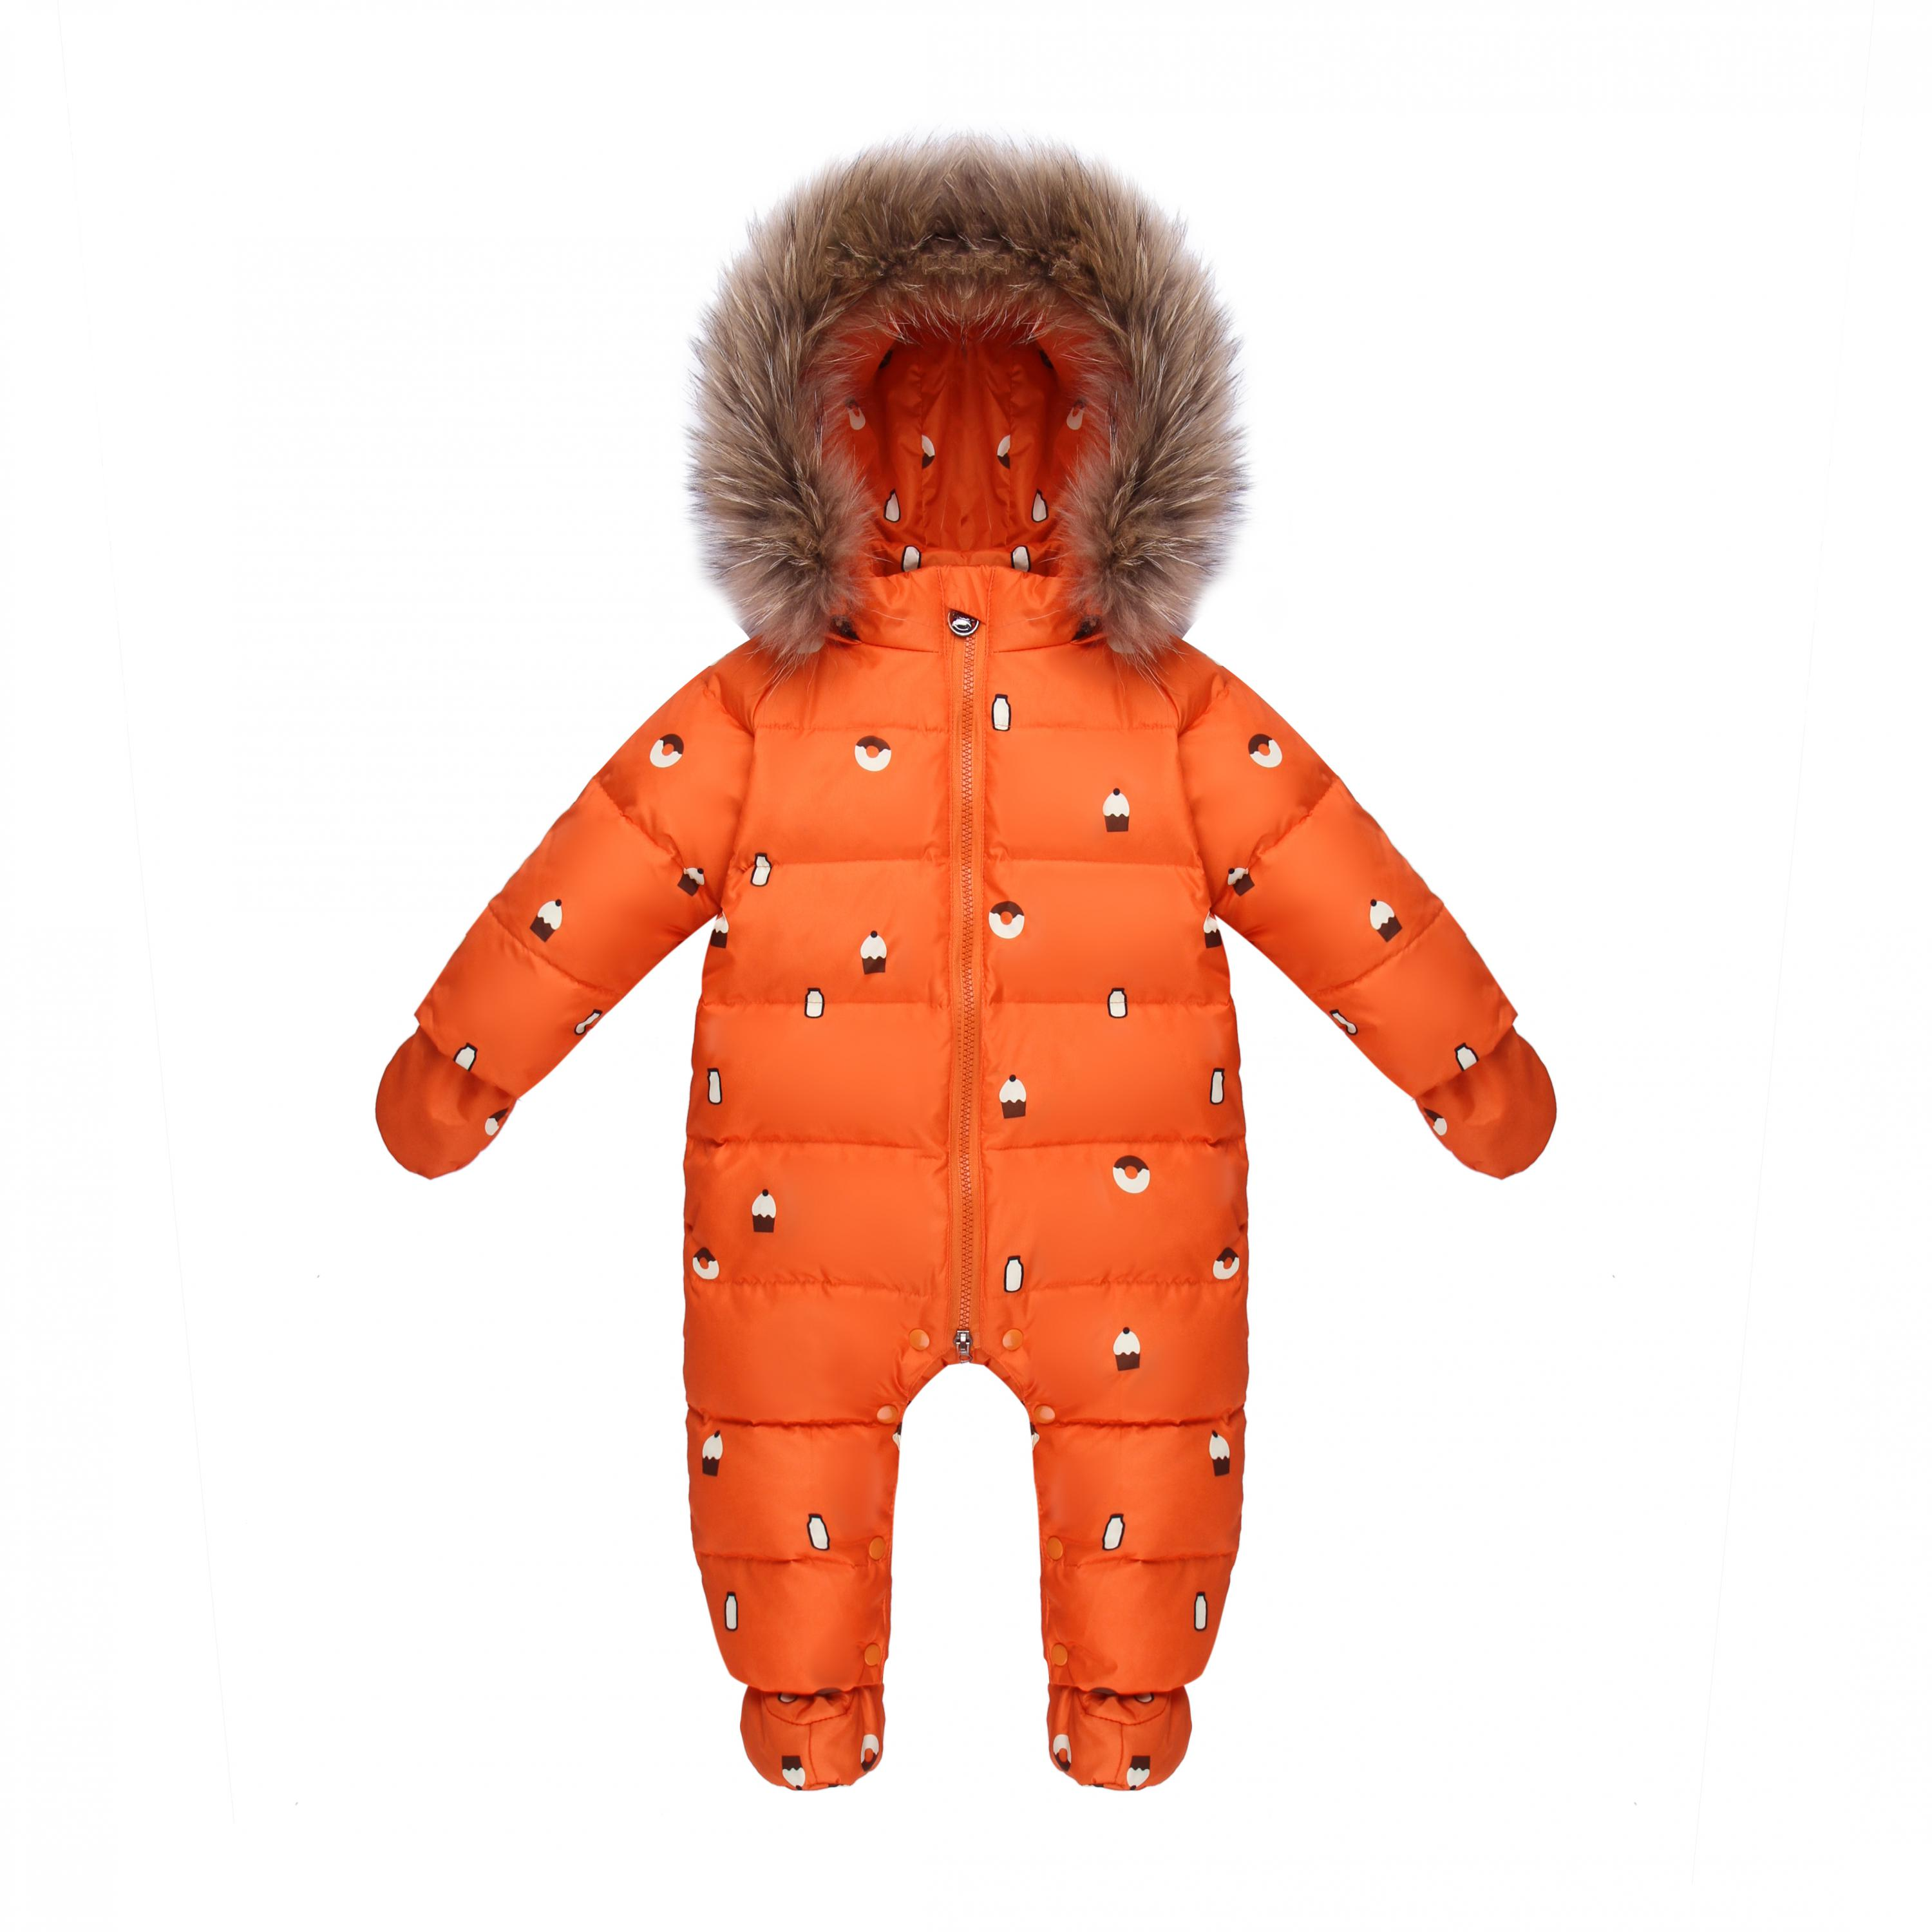 2018 fashion winter coats for baby girls clothes 5 colours baby jumpsuits infant snow wear warm snowsuits 2016 winter russia winter down coats for baby clothing fashion shinning waterproof snowsuits warm snow wear for baby girls boys